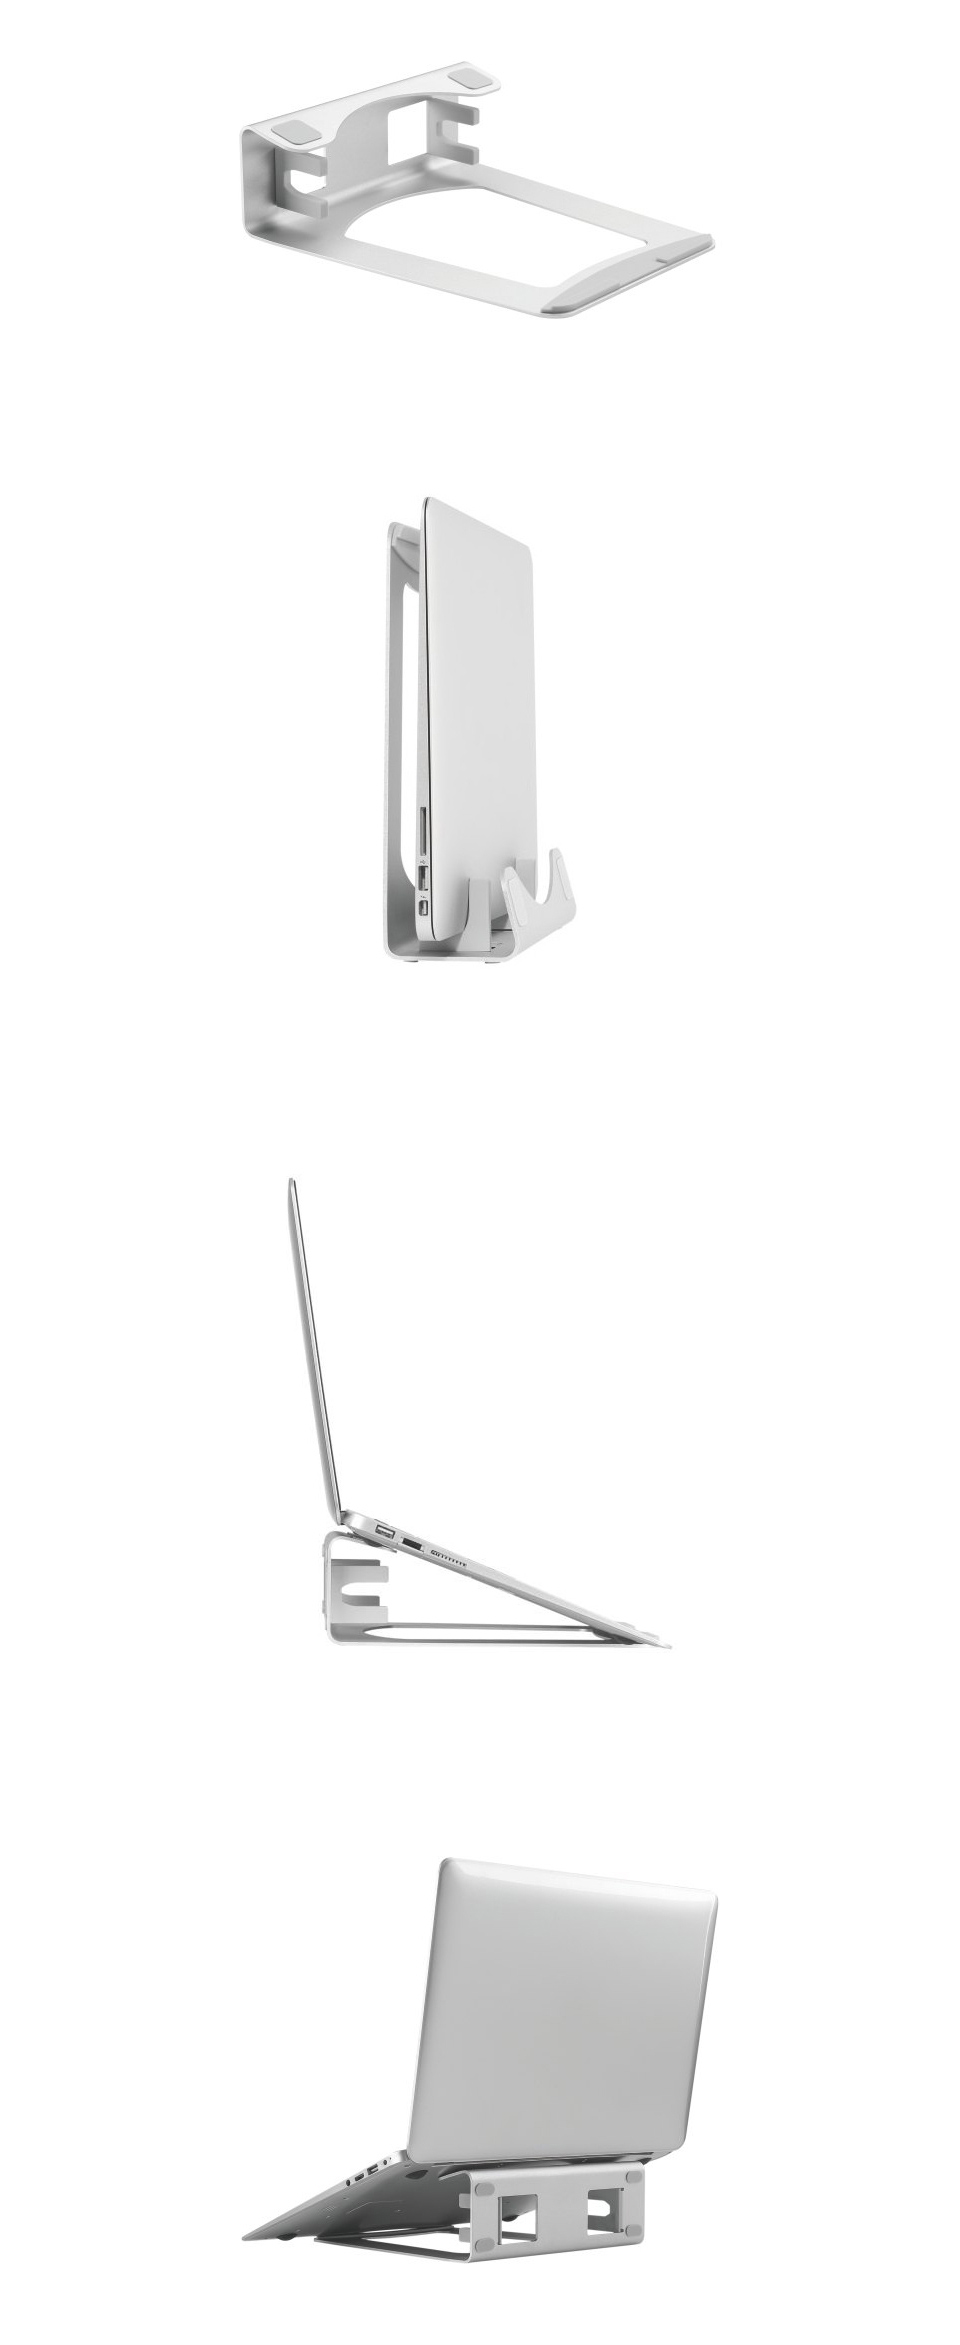 Brateck AR-6 2 IN 1 Adjustable Aluminum Laptop Stand product